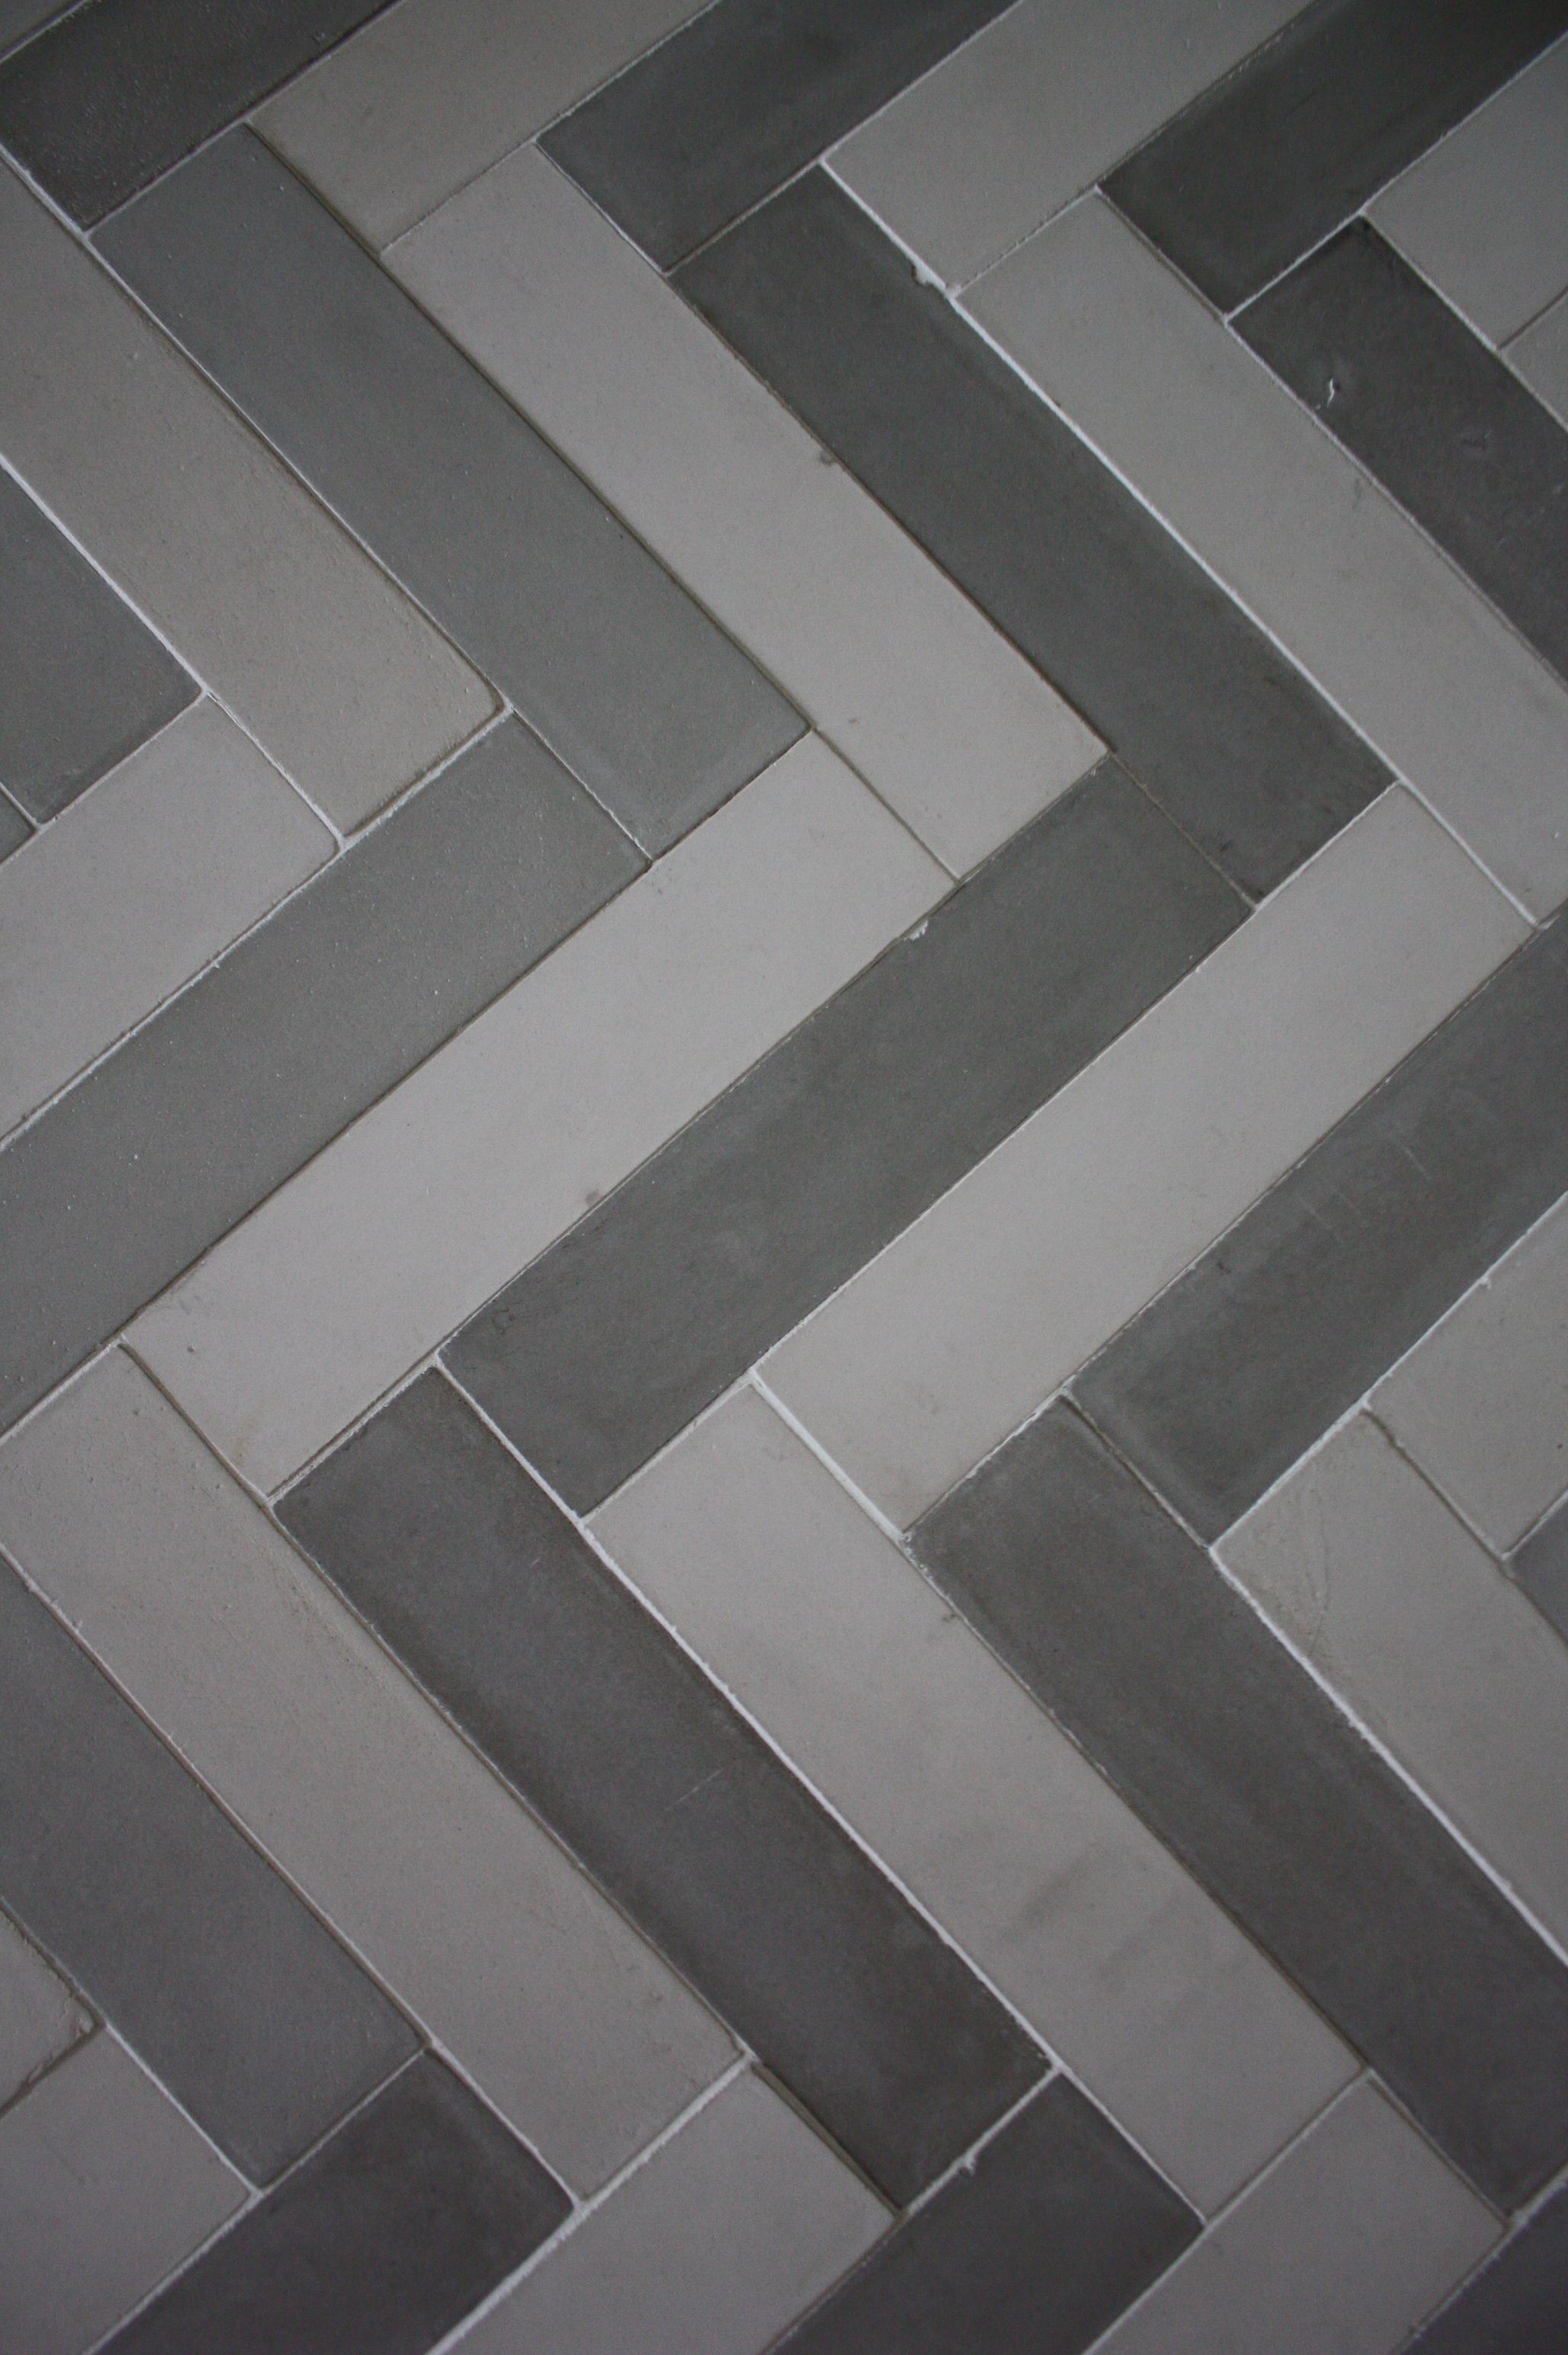 2X8 Cement Tile In Chevron Pattern By Presidio Tile